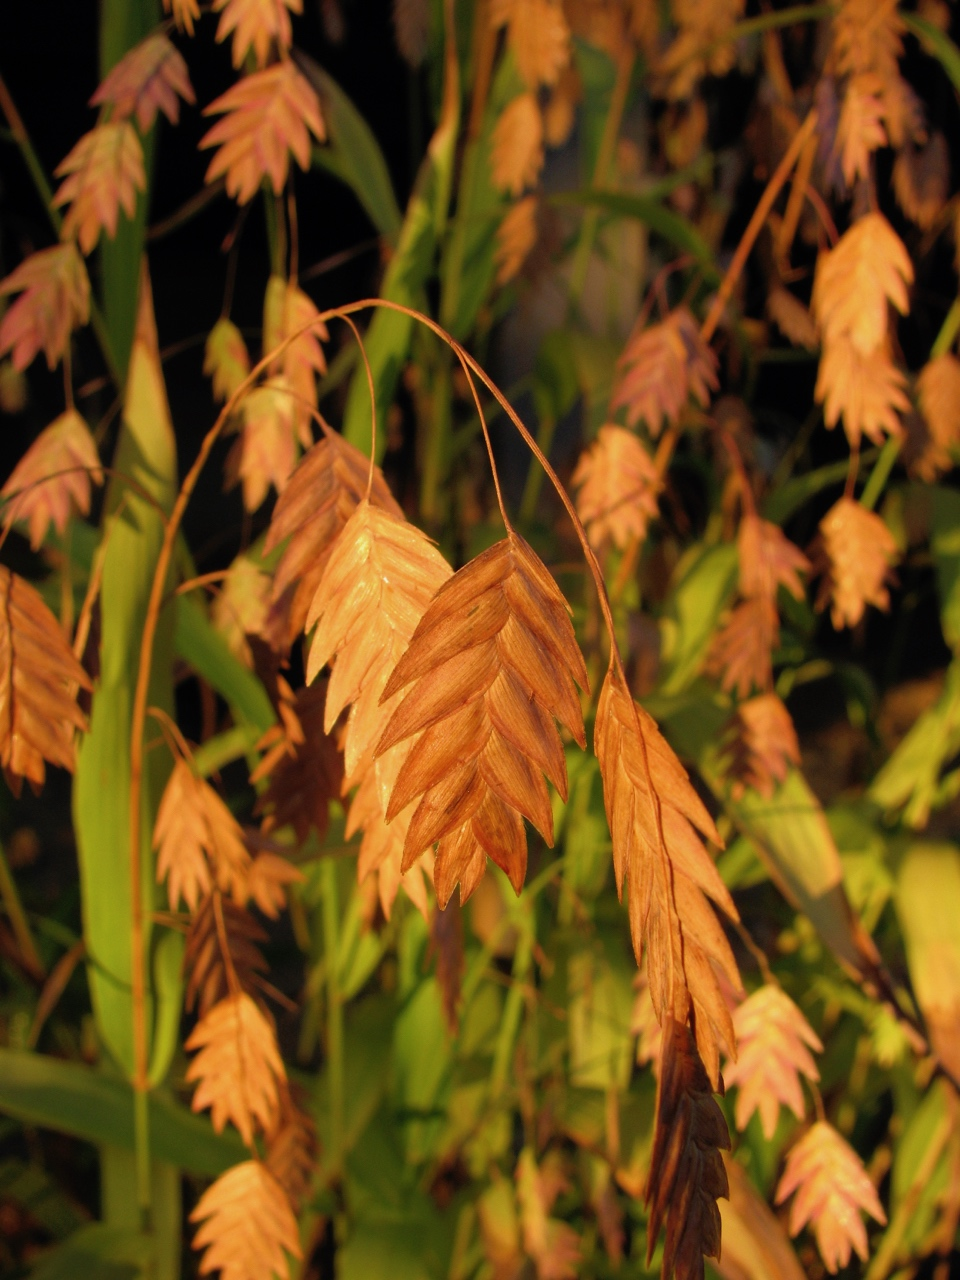 The Scientific Name is Chasmanthium latifolium [= Uniola latifolia]. You will likely hear them called River Oats, Fish-on-a-pole. This picture shows the Mature spikelets in the Fall of Chasmanthium latifolium [= Uniola latifolia]